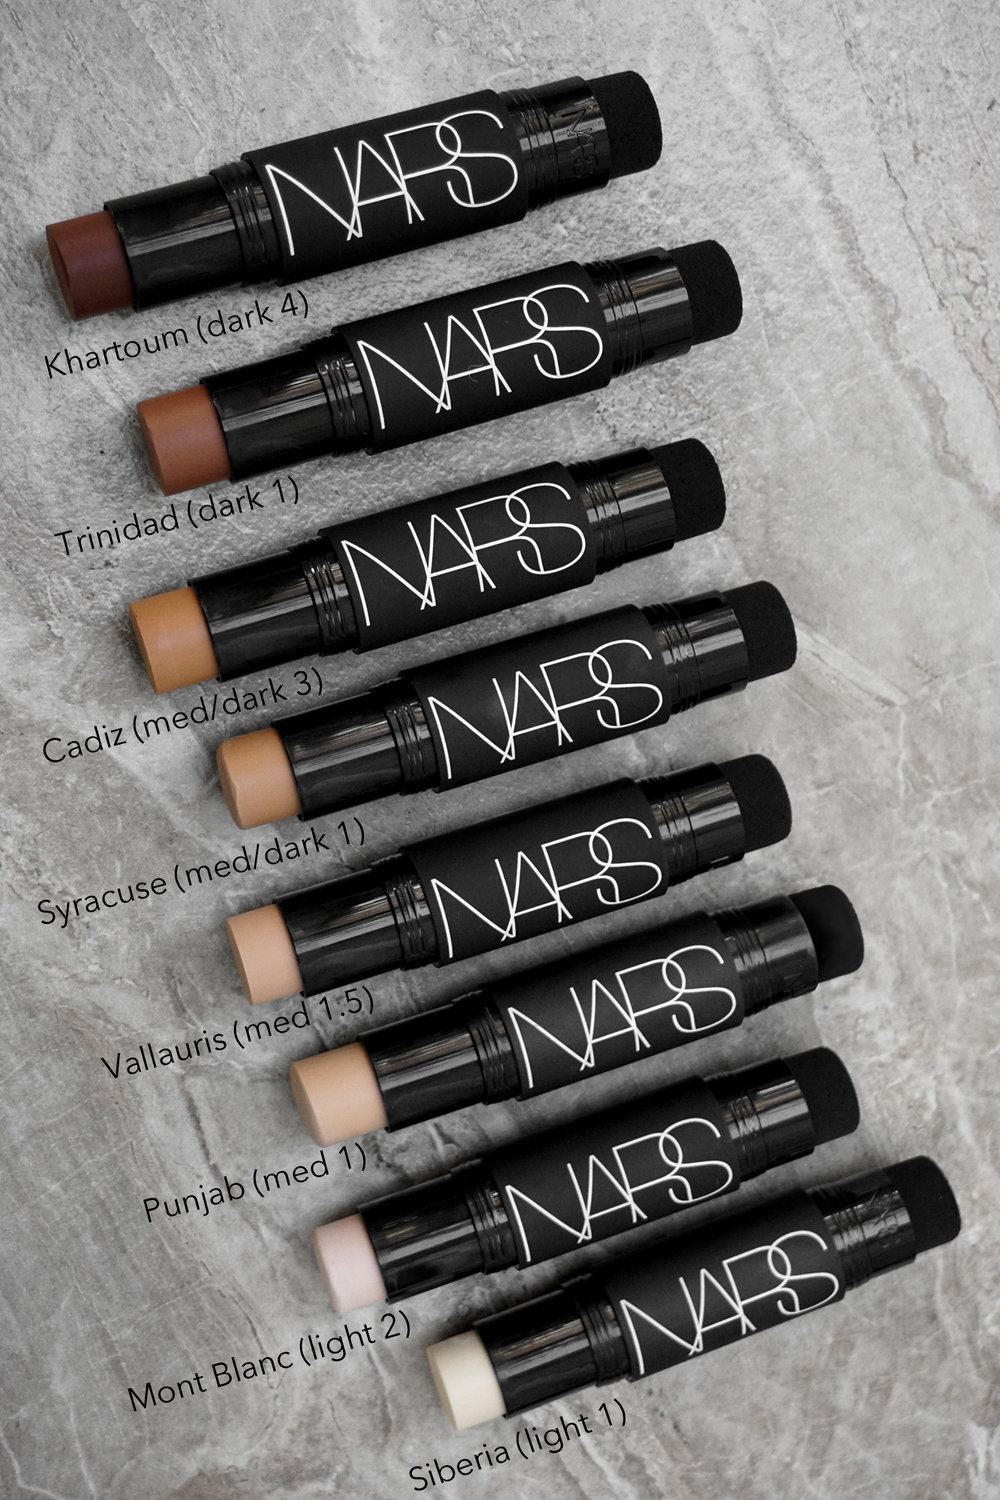 Nars Velvet Matte Foundation Stick swatches.jpg